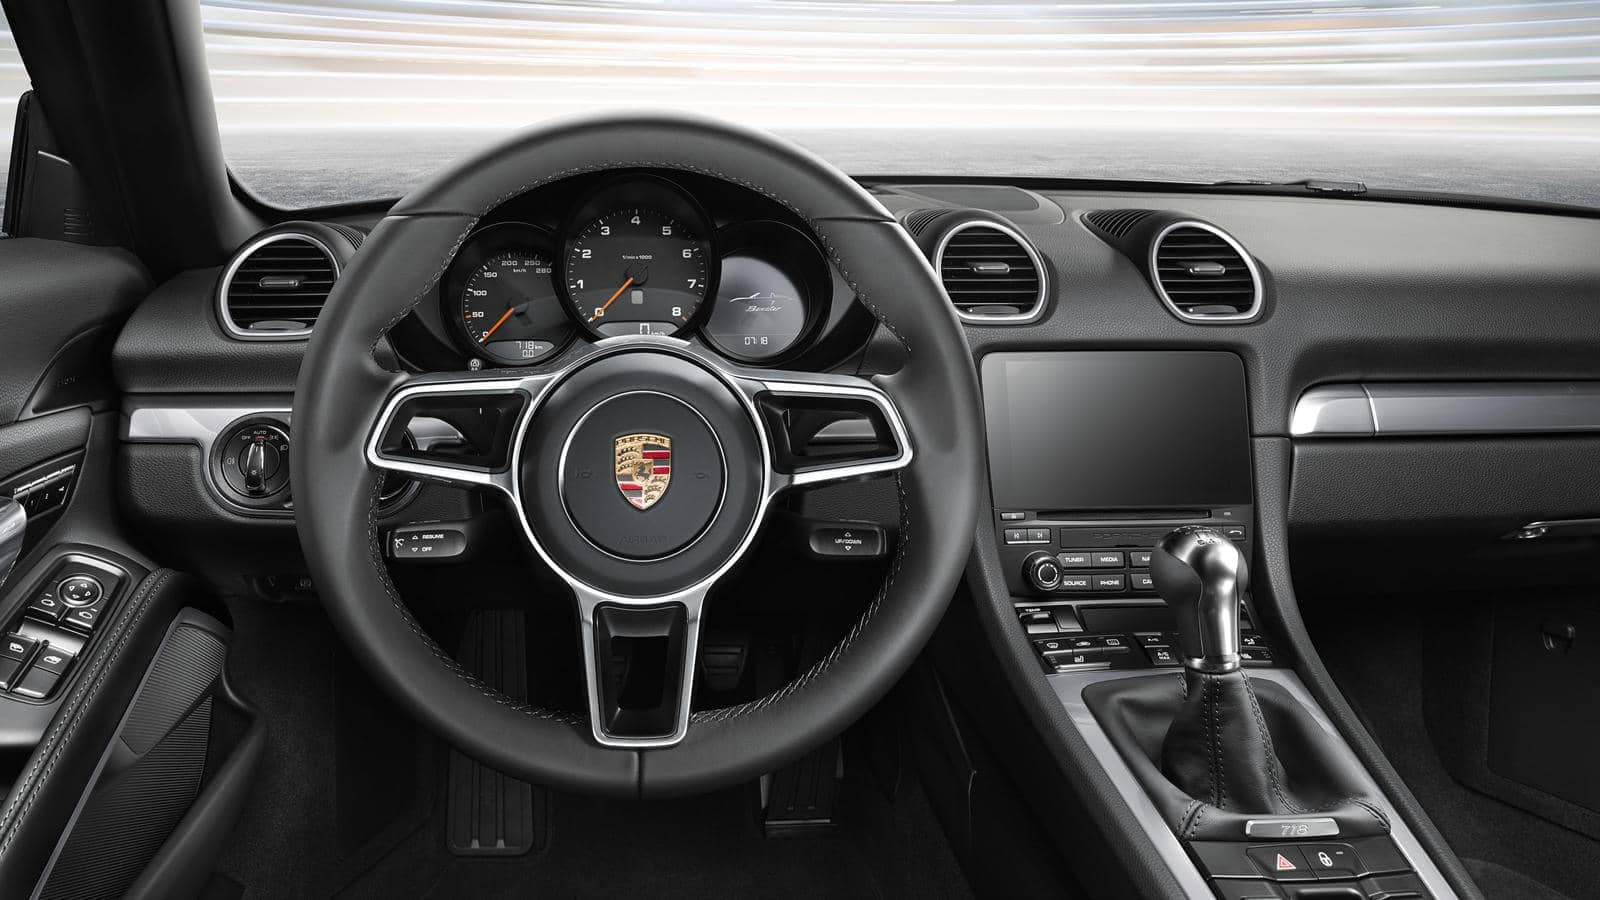 2018 Porsche 718 Boxster steering wheel